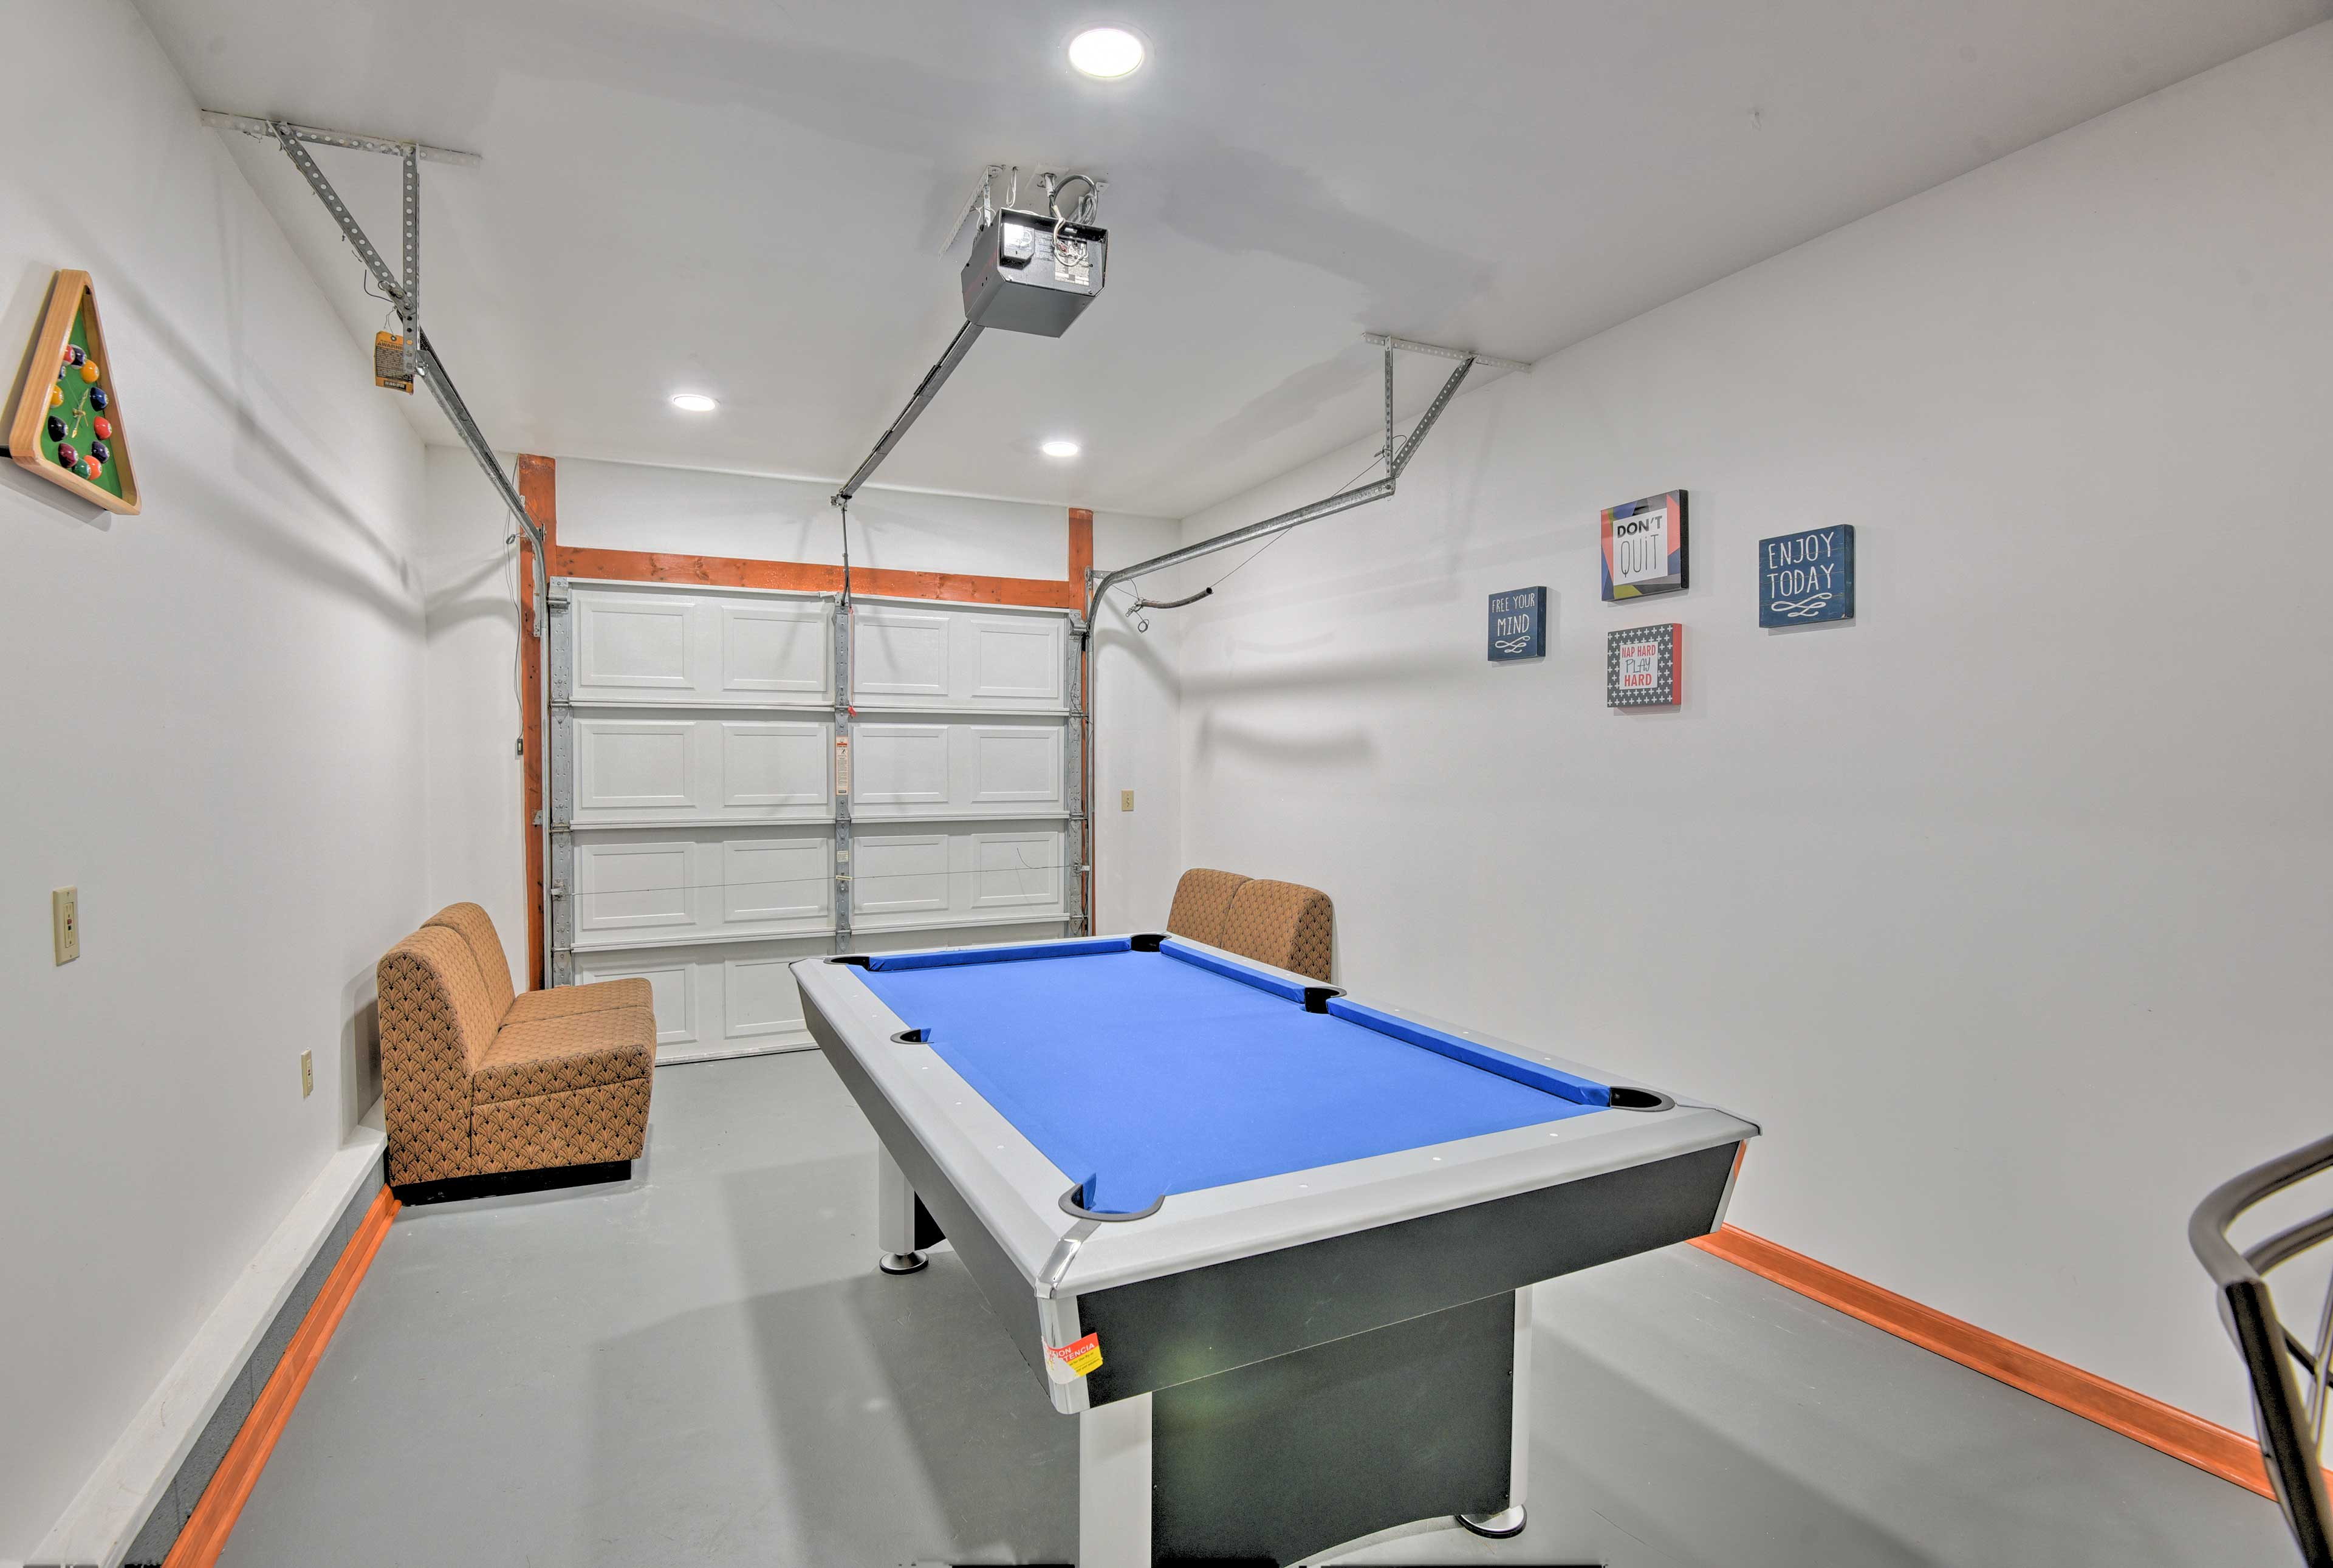 Play a game of billiards or cut throat for odd or even groups!